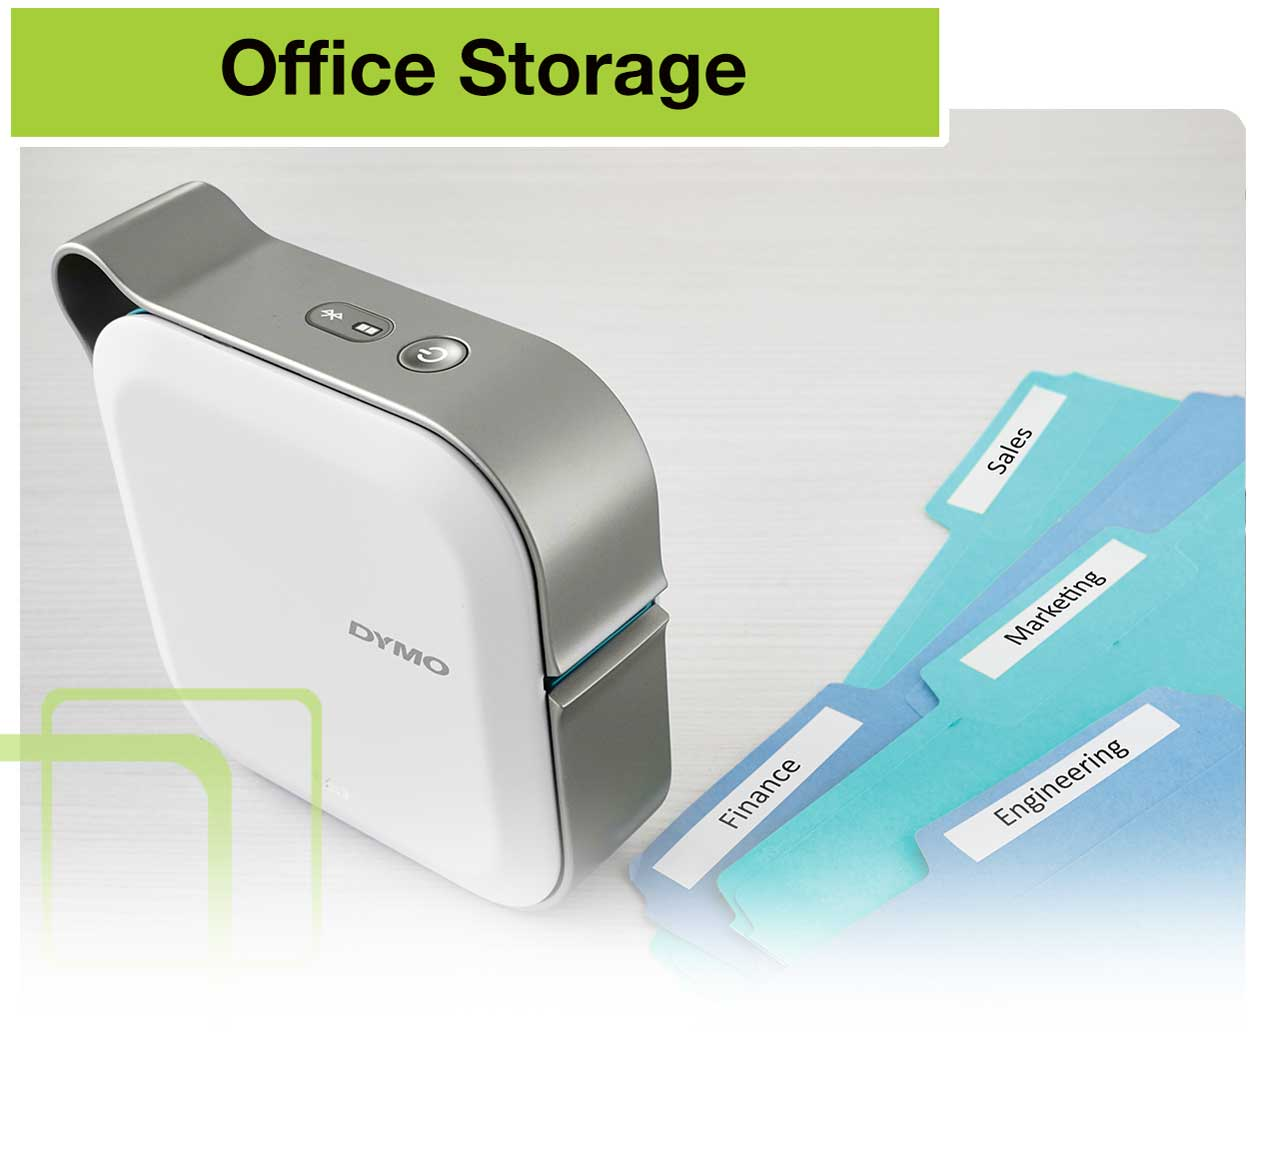 Shop All Office Storage